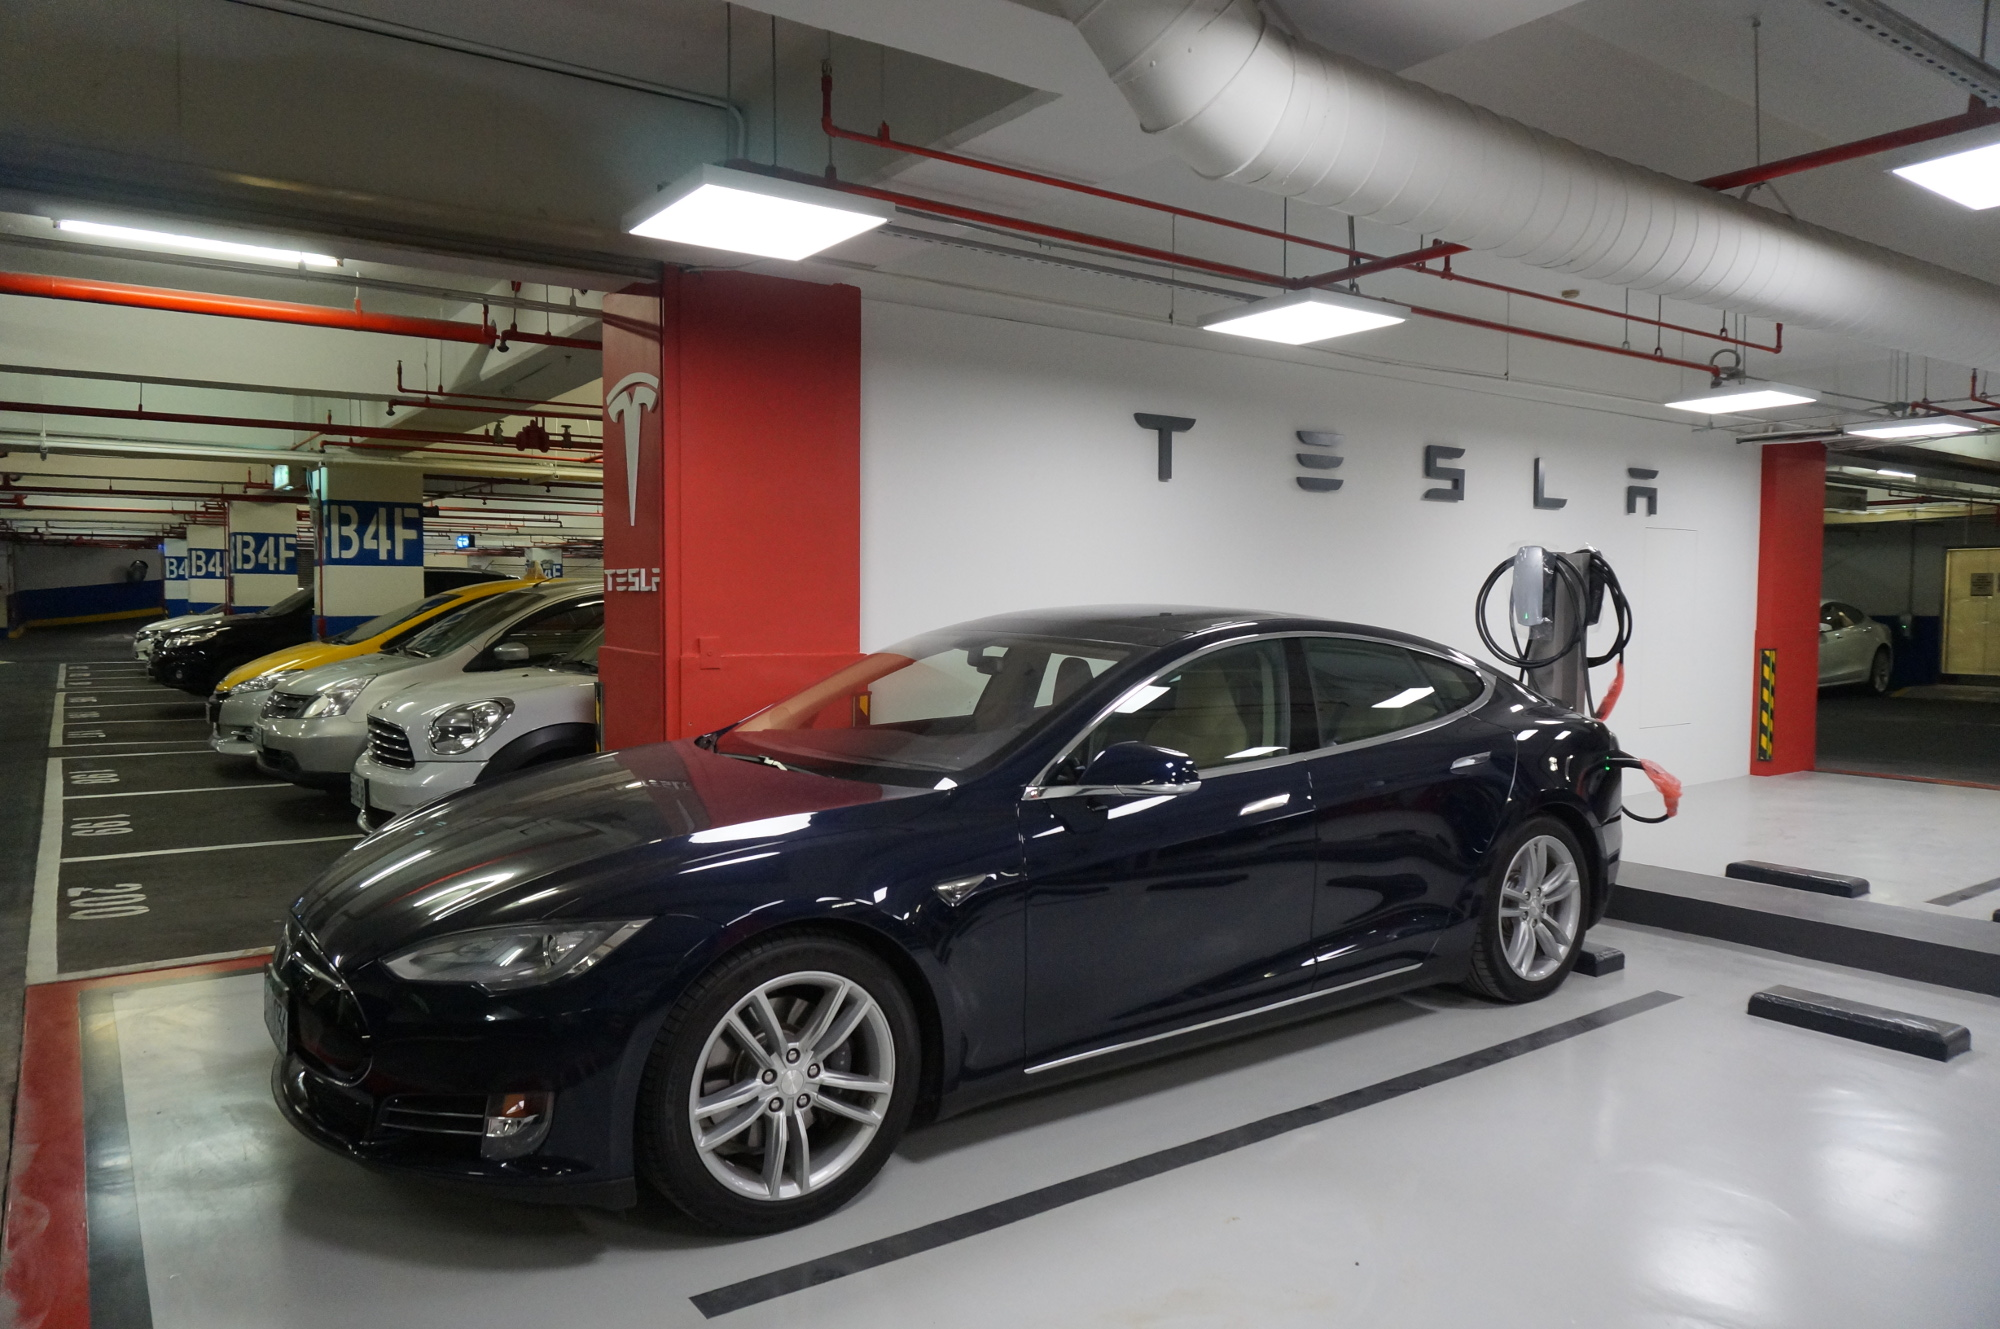 Tesla-Parking-in-Department-Store